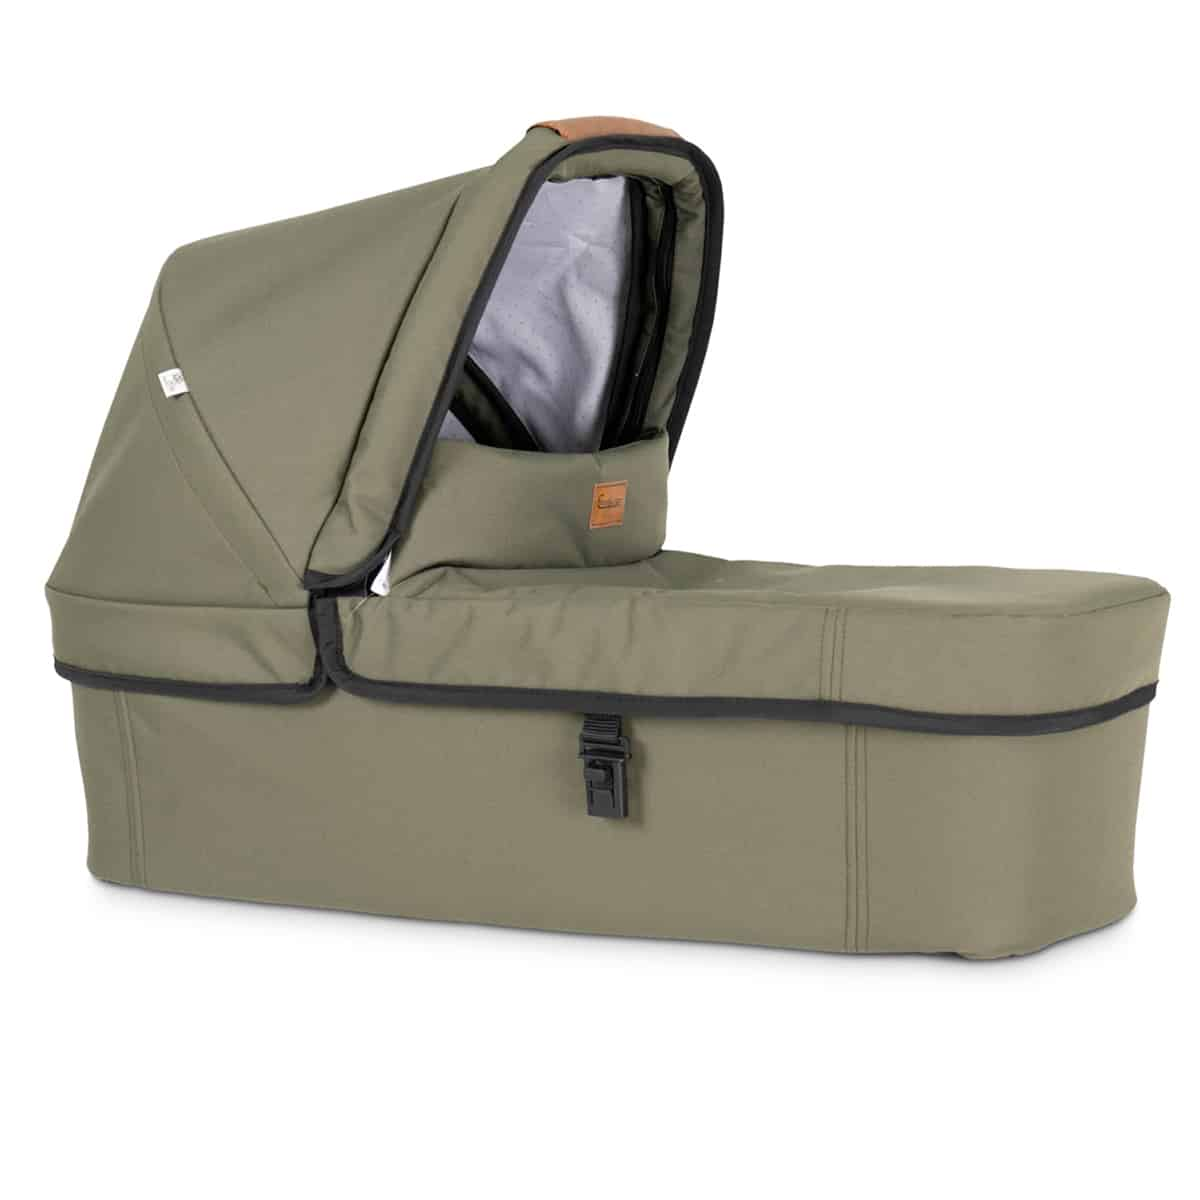 NXT Babylift Outdoor Olive